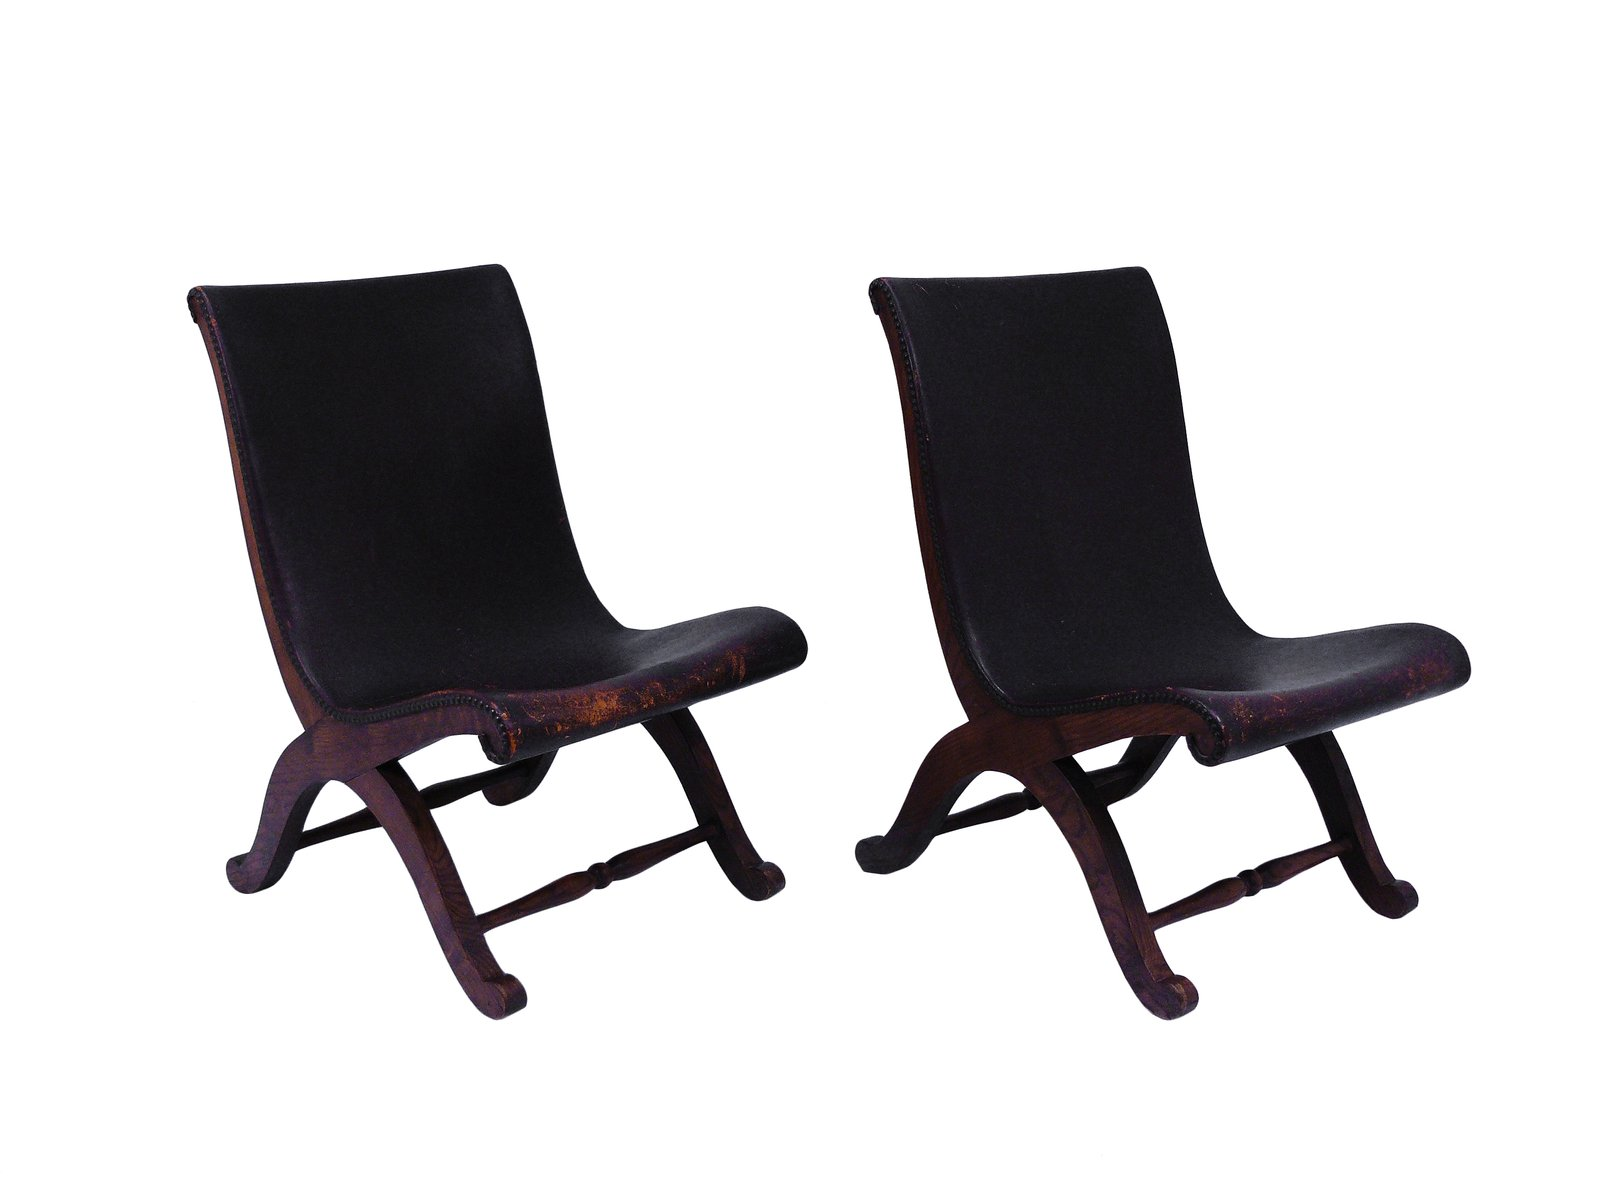 slipper chairs by pierre lottier for valenti 1940s set of 2 for sale at pamono